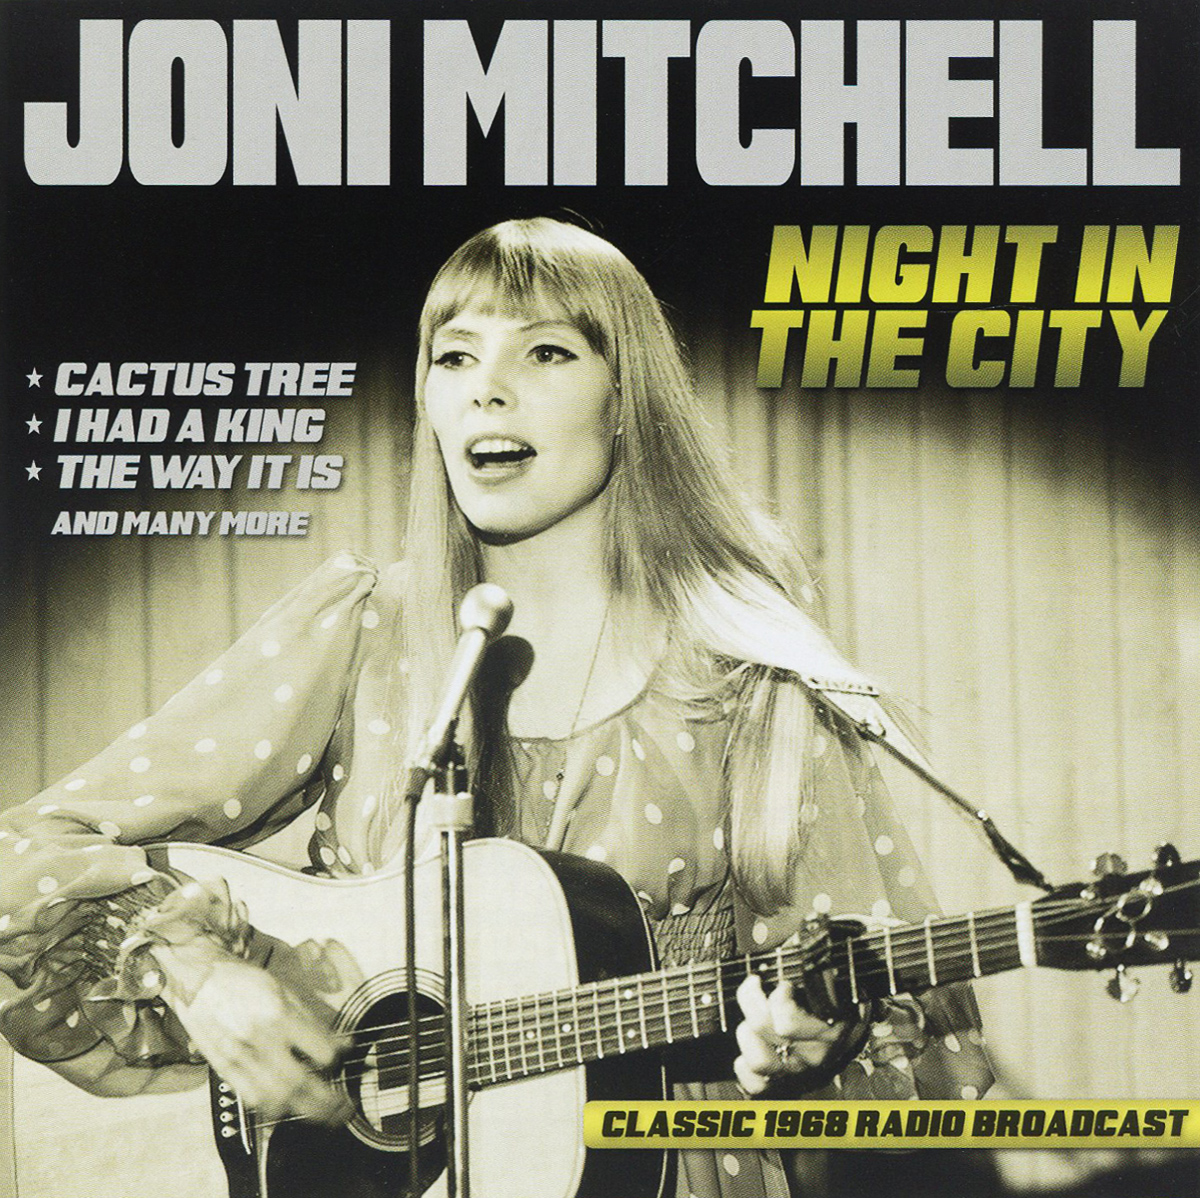 Джони Митчелл Joni Mitchell. Night In The City стоимость